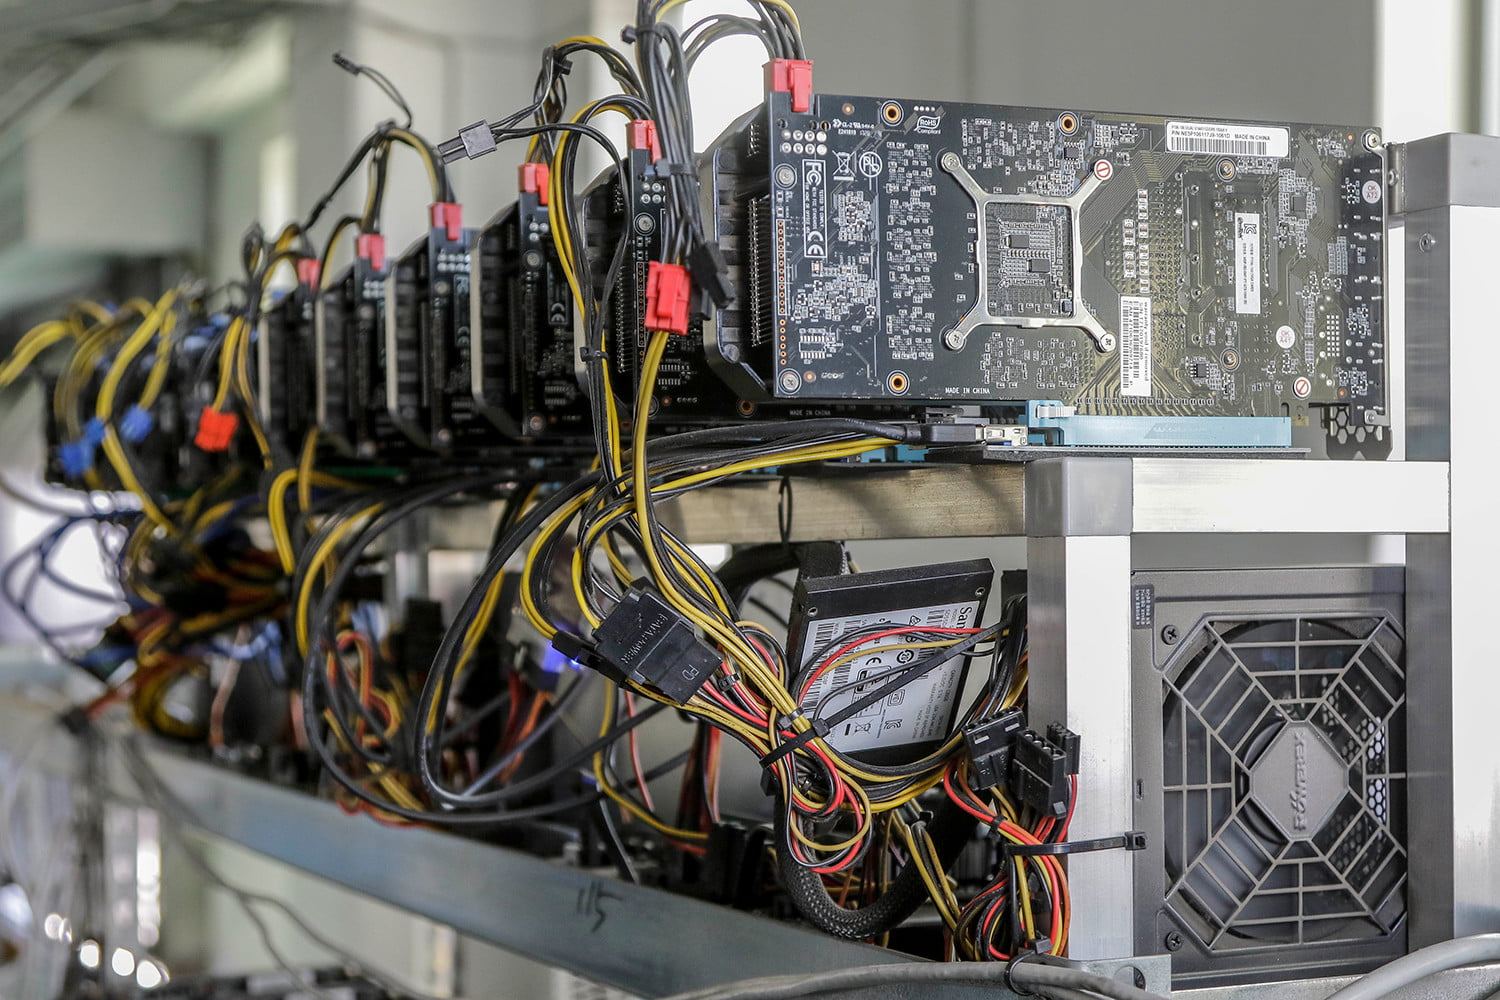 How To Mine Bitcoin Digital Trends